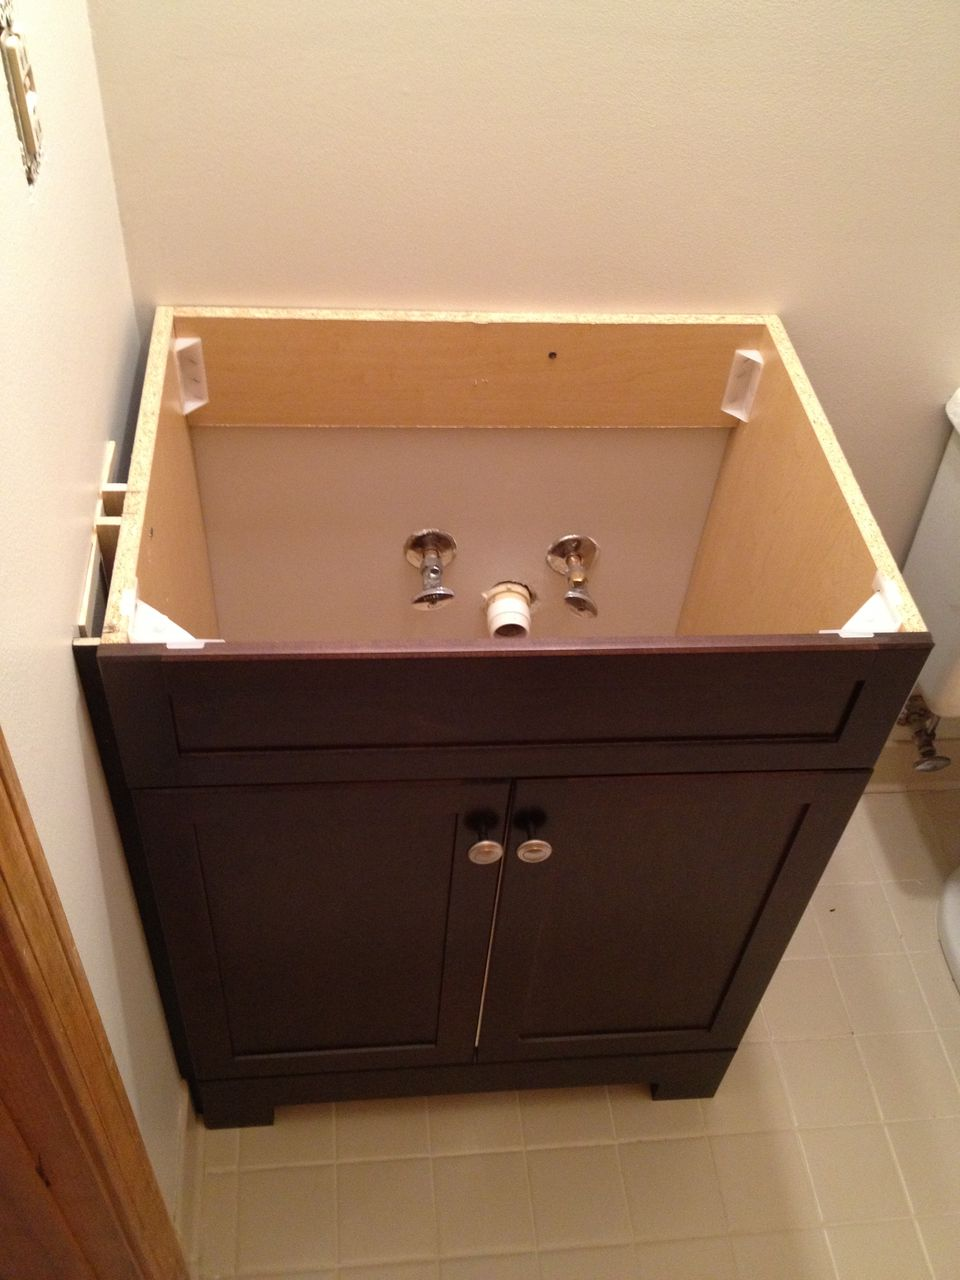 Installed vanity without topHow to Replace and Install a Bathroom Vanity. Installing Bathroom Vanity. Home Design Ideas